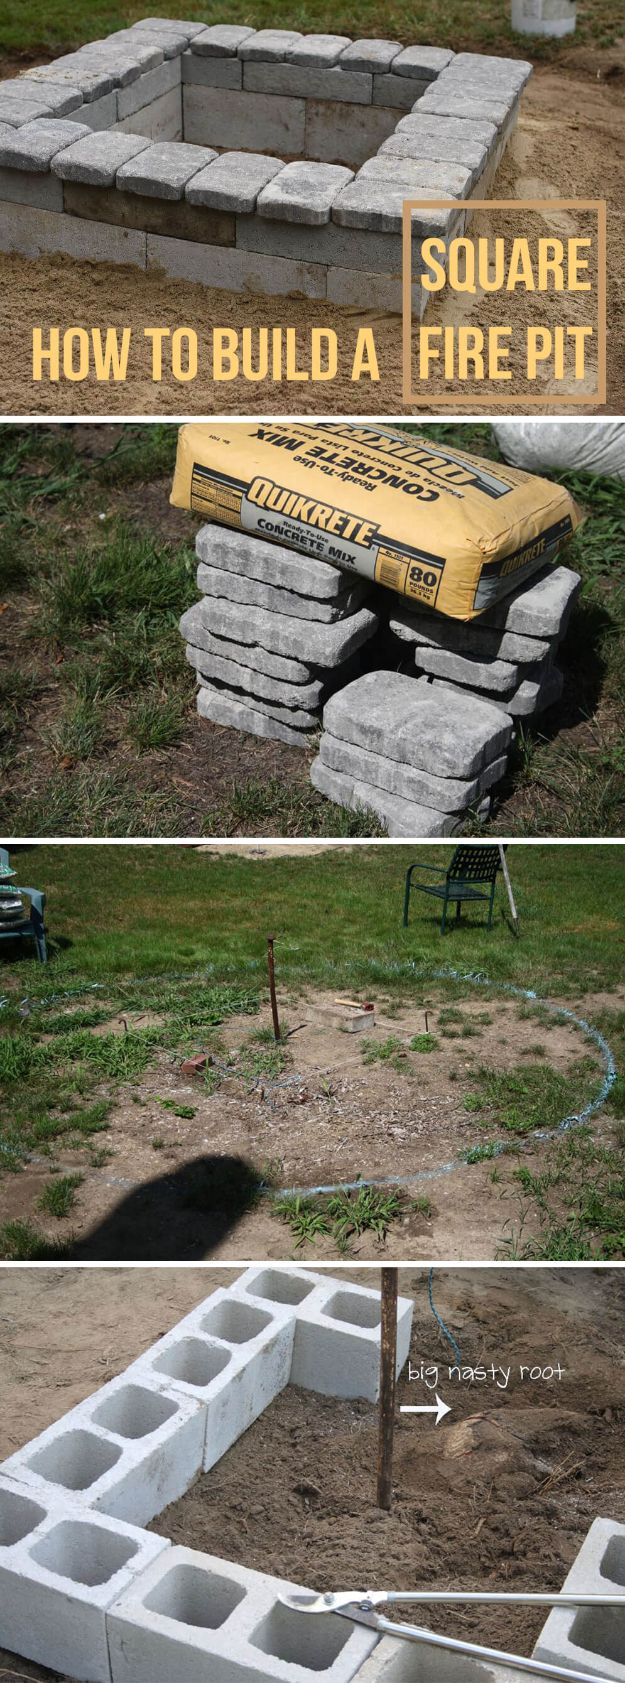 DIY Firepits - Square Concrete and Stone Firepit - Step by Step Tutorial for Raised Firepit , In Ground, Portable, Brick, Stone, Metal and Cinder Block Outdoor Fireplace - Add Seating to Your Patio and yard With An Inexpensive Firepit http://diyjoy.com/diy-firepits